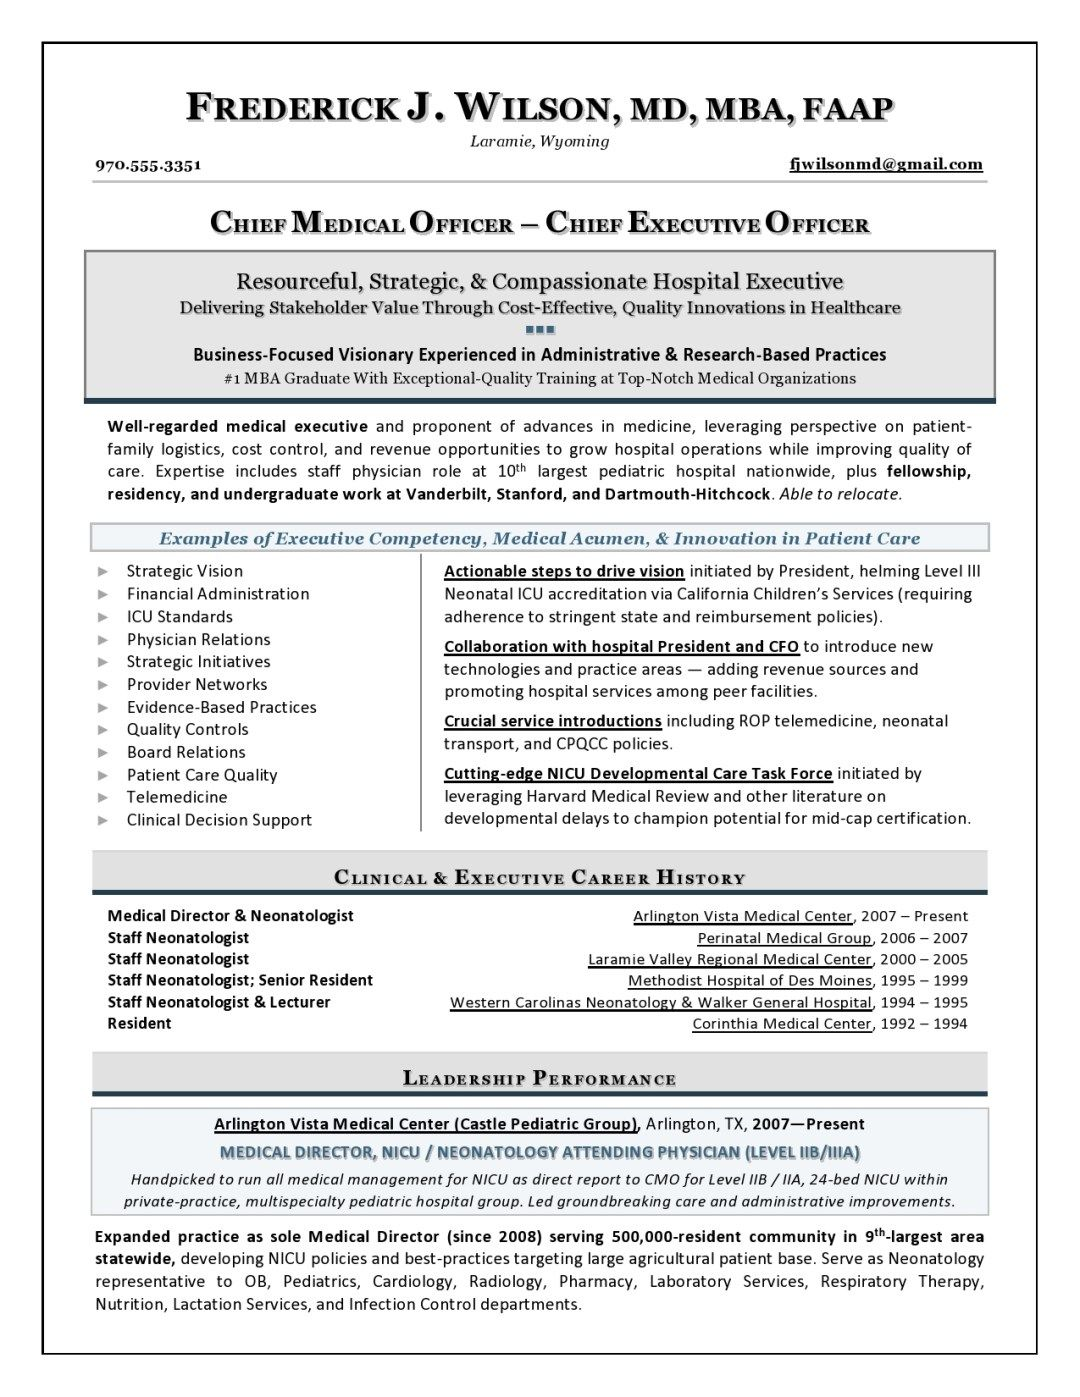 Chief Medical Officer Sample Resume Executive Resume Writer For